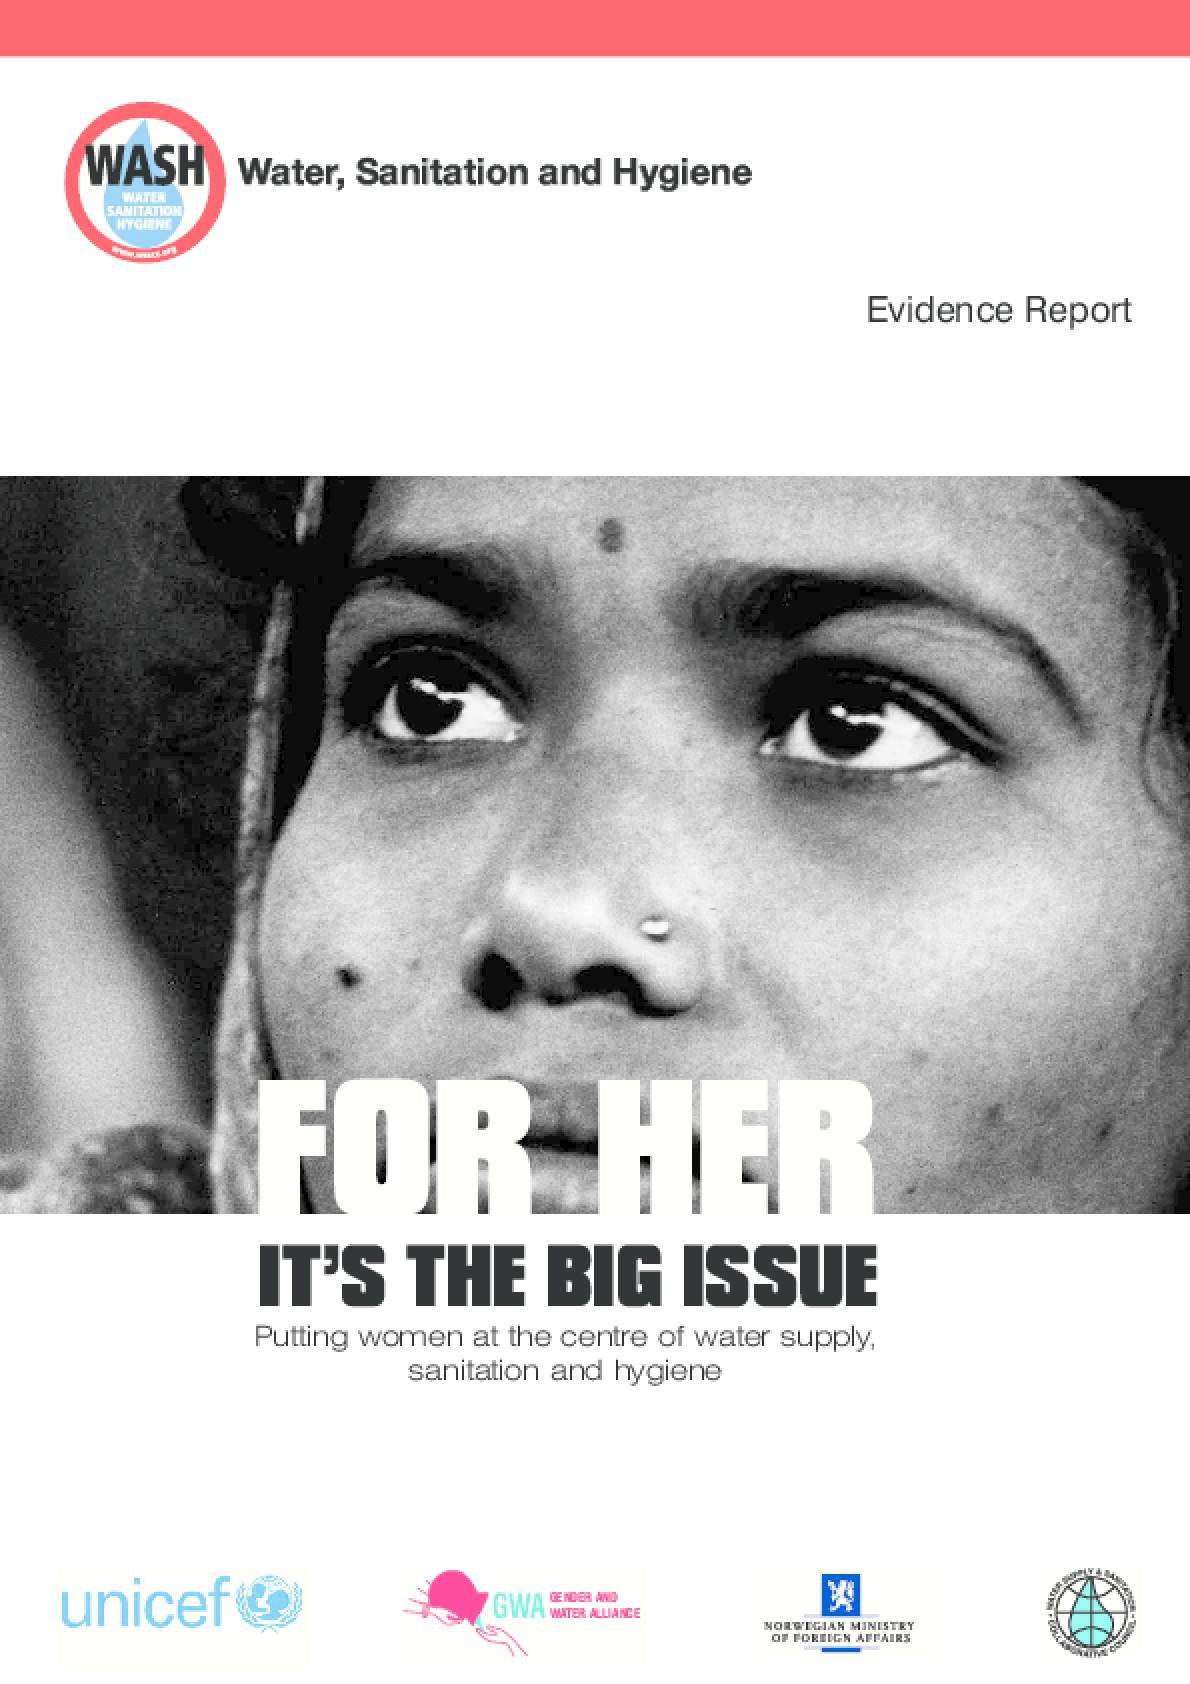 For Her It's the Big Issue: Putting Women at the Centre of Water Supply, Sanitation and Hygiene